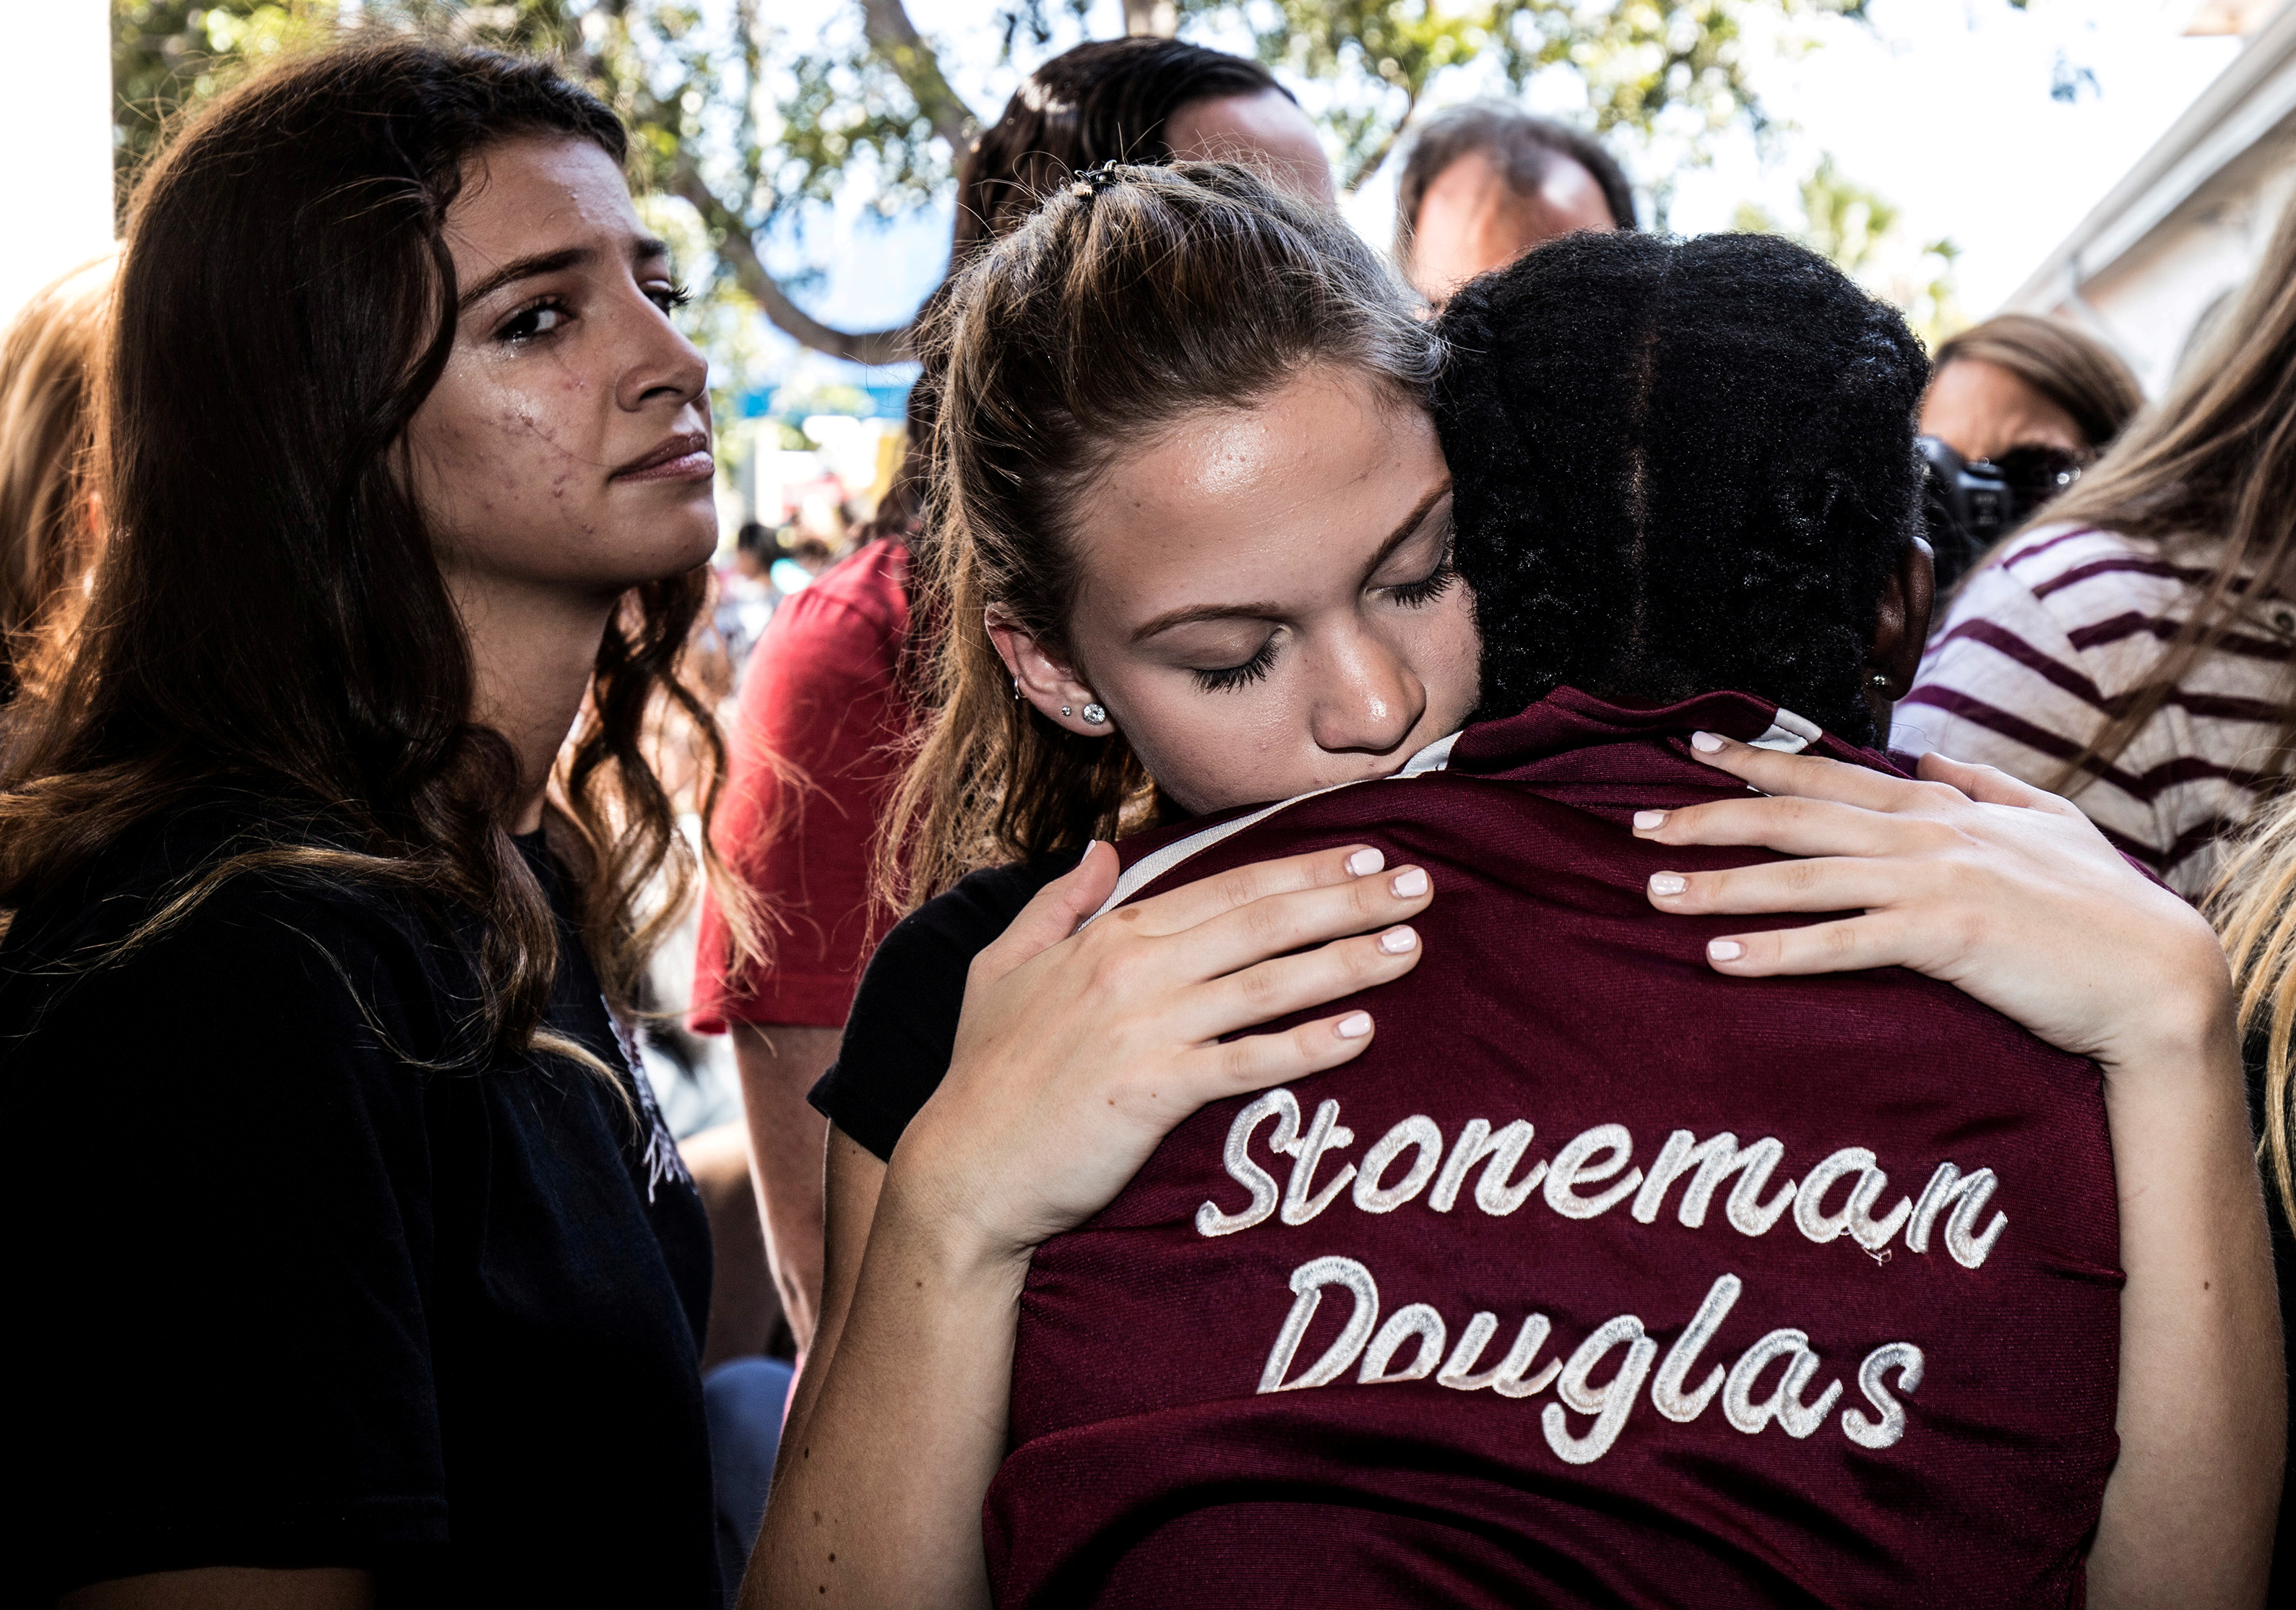 FILE PHOTO: Students from Marjory Stoneman Douglas High School attend a memorial following a school shooting incident in Parkland, Florida, U.S., February 15, 2018. REUTERS/Thom Baur/File Photo